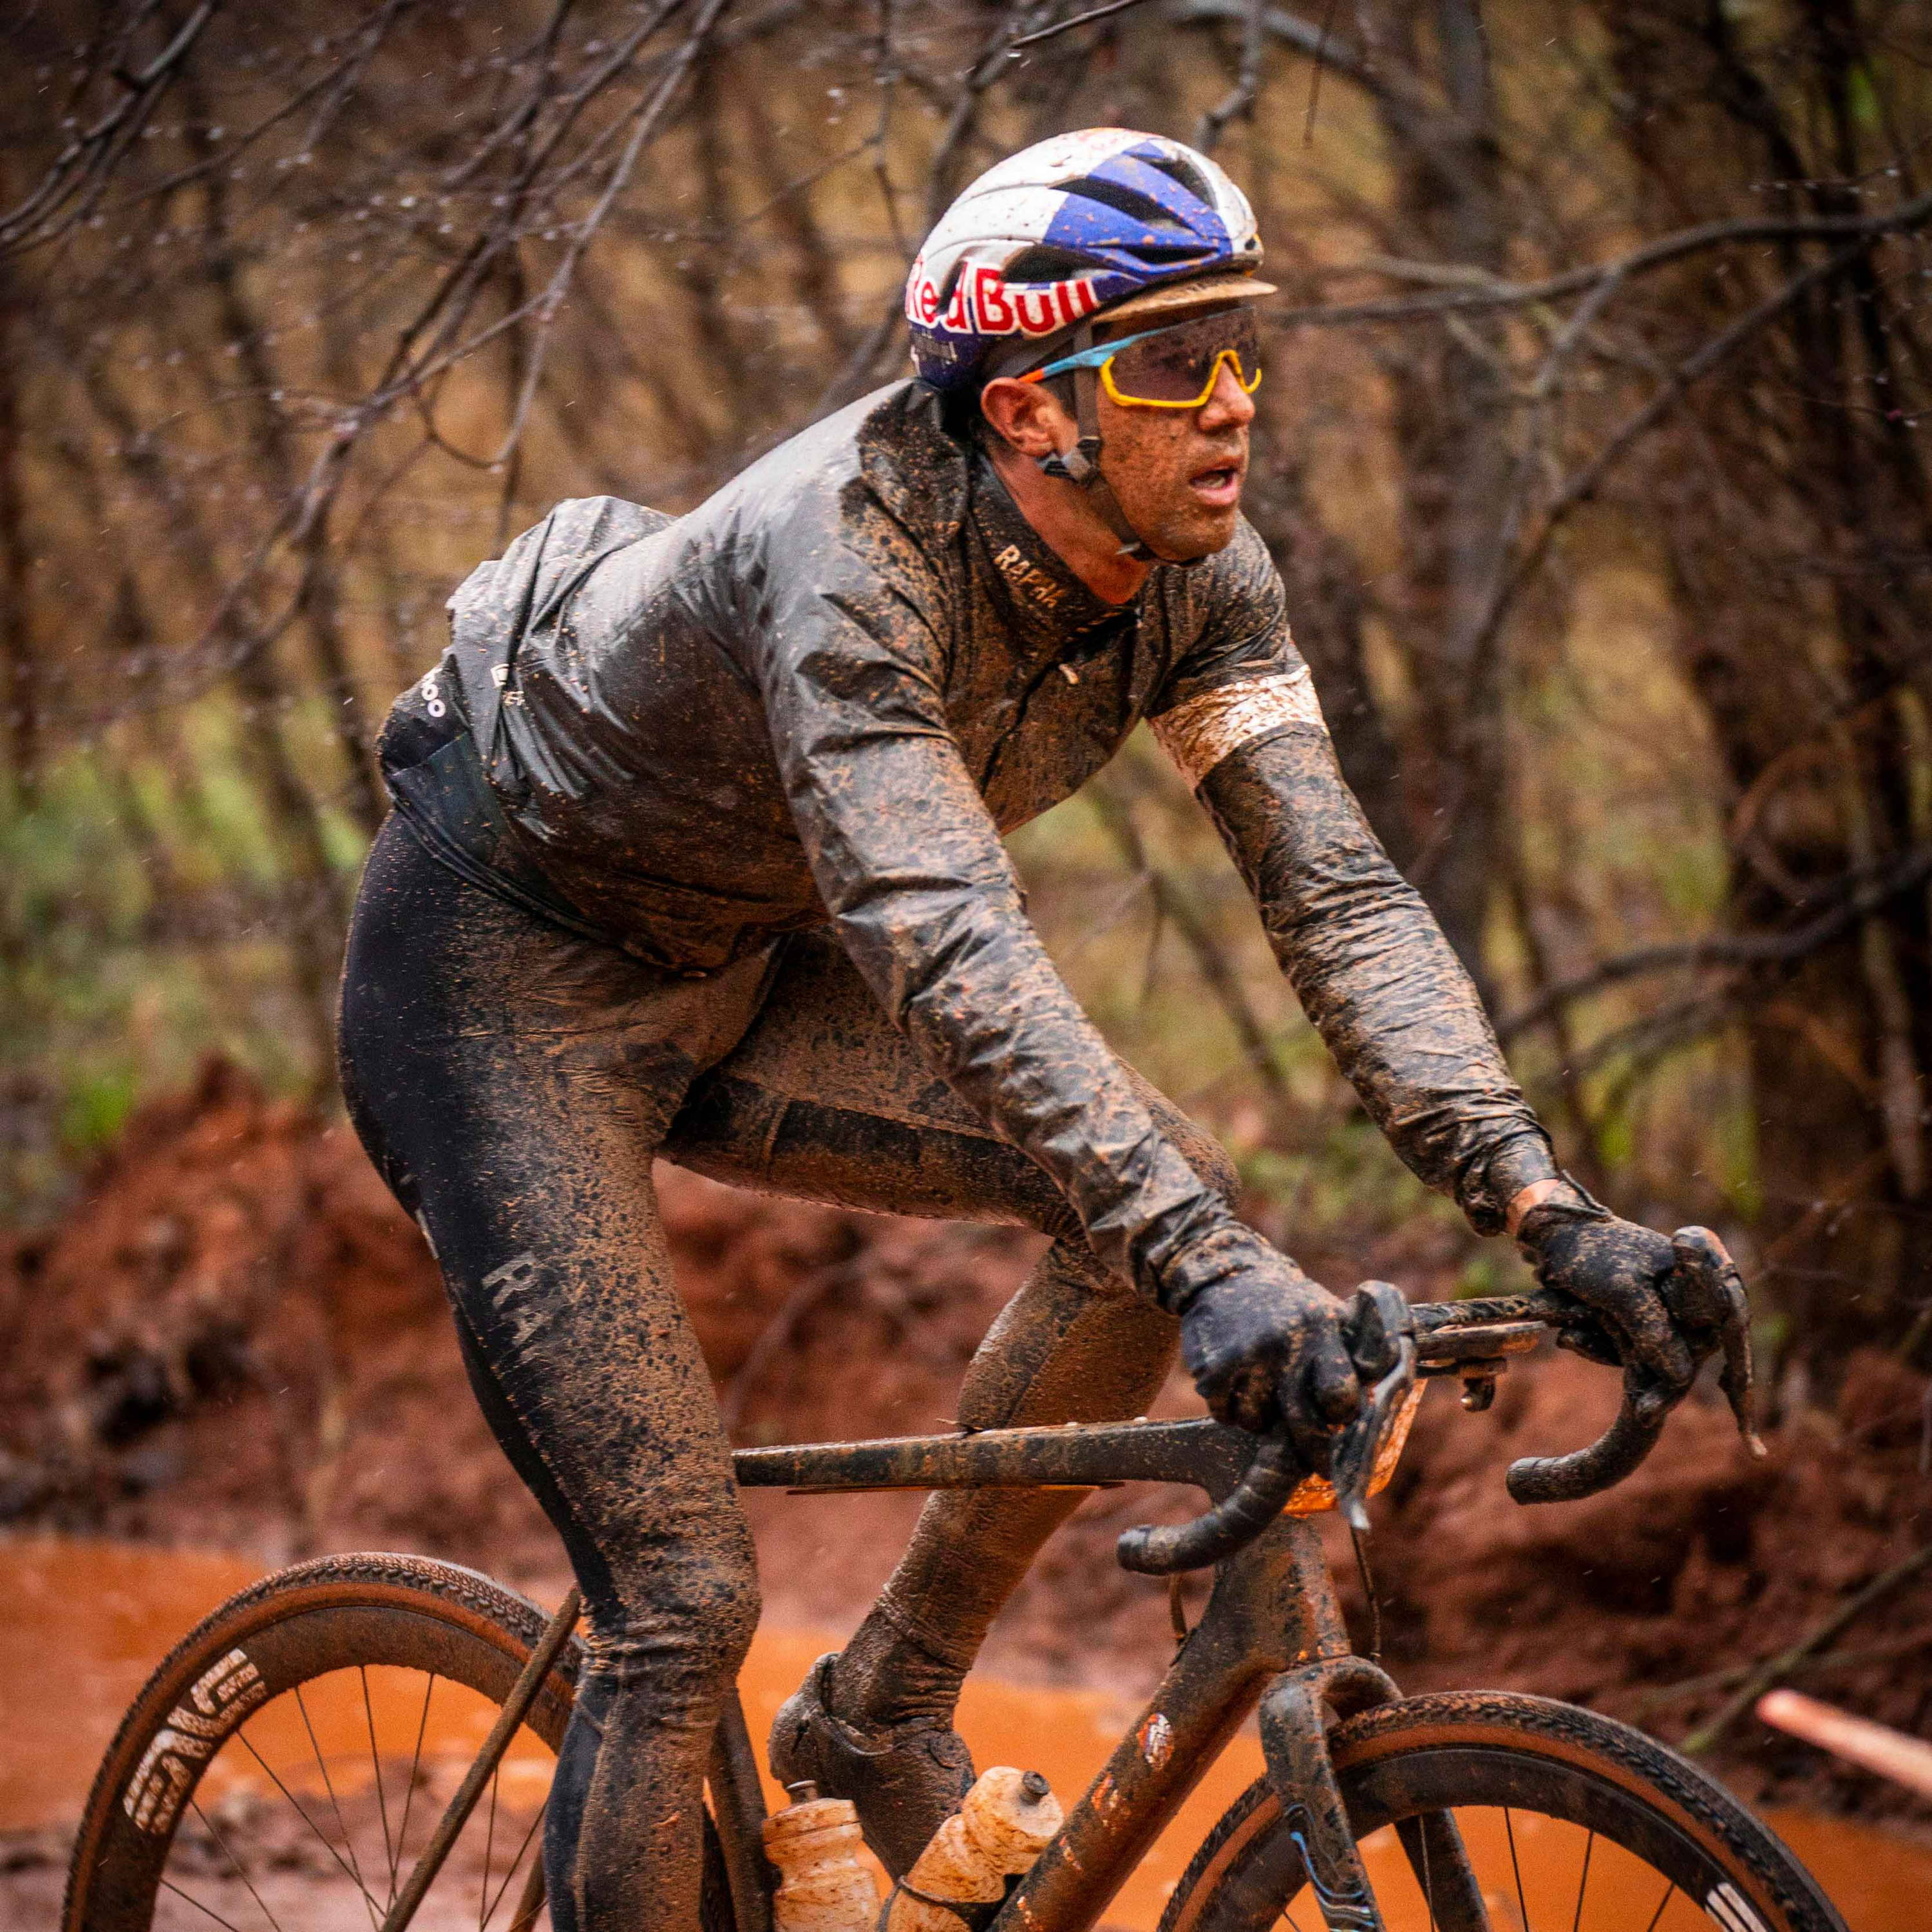 Colin Strickland riding his bike covered in mud